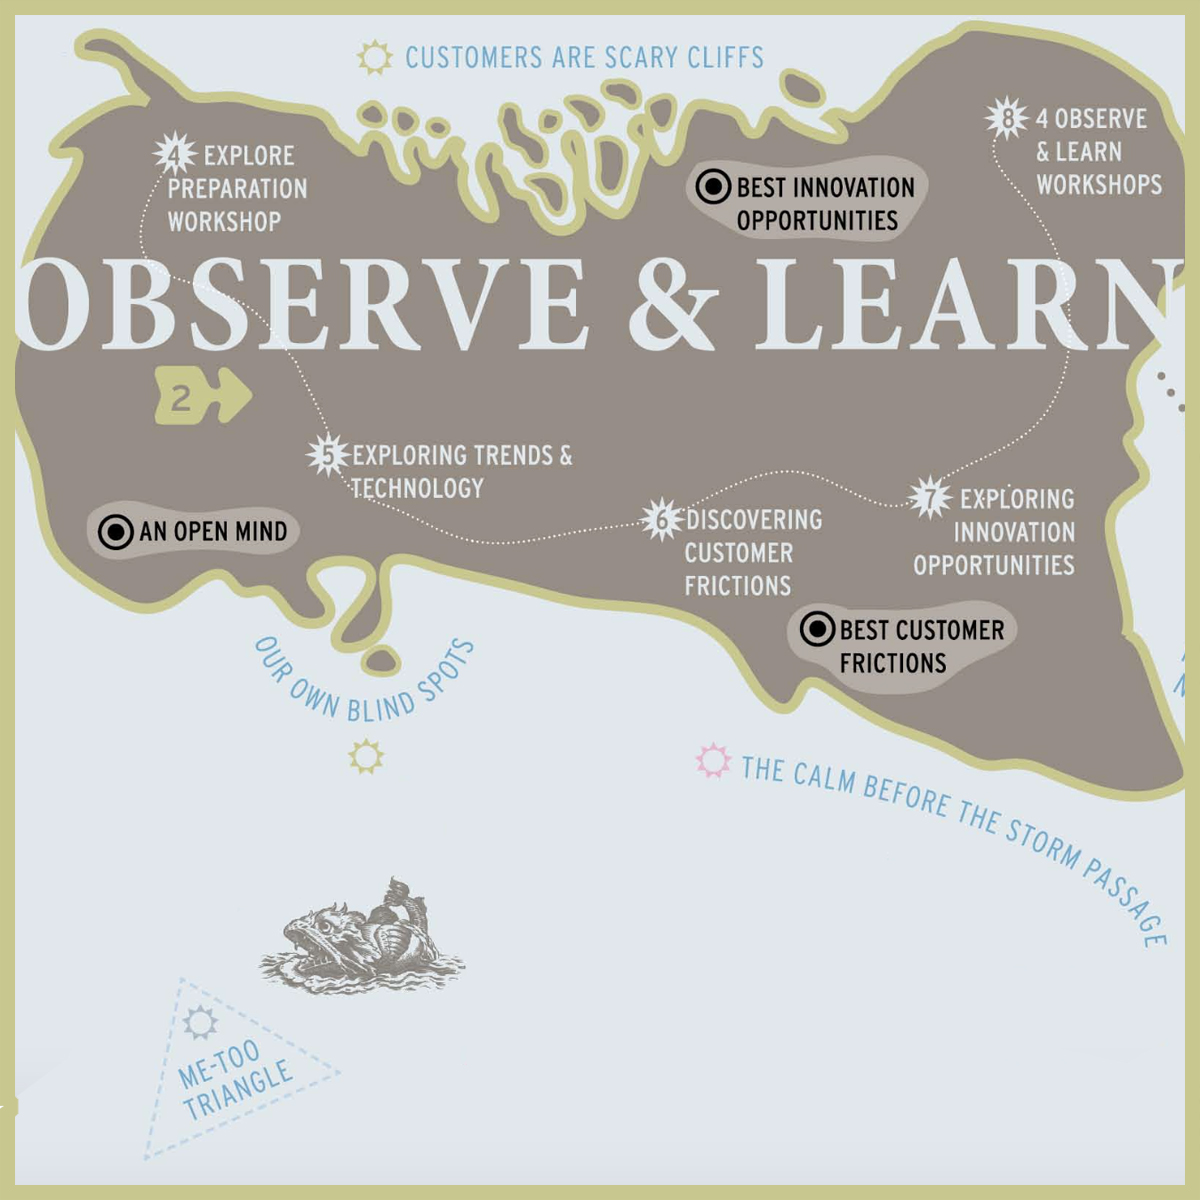 FORTH Innovation - Observe and Learn